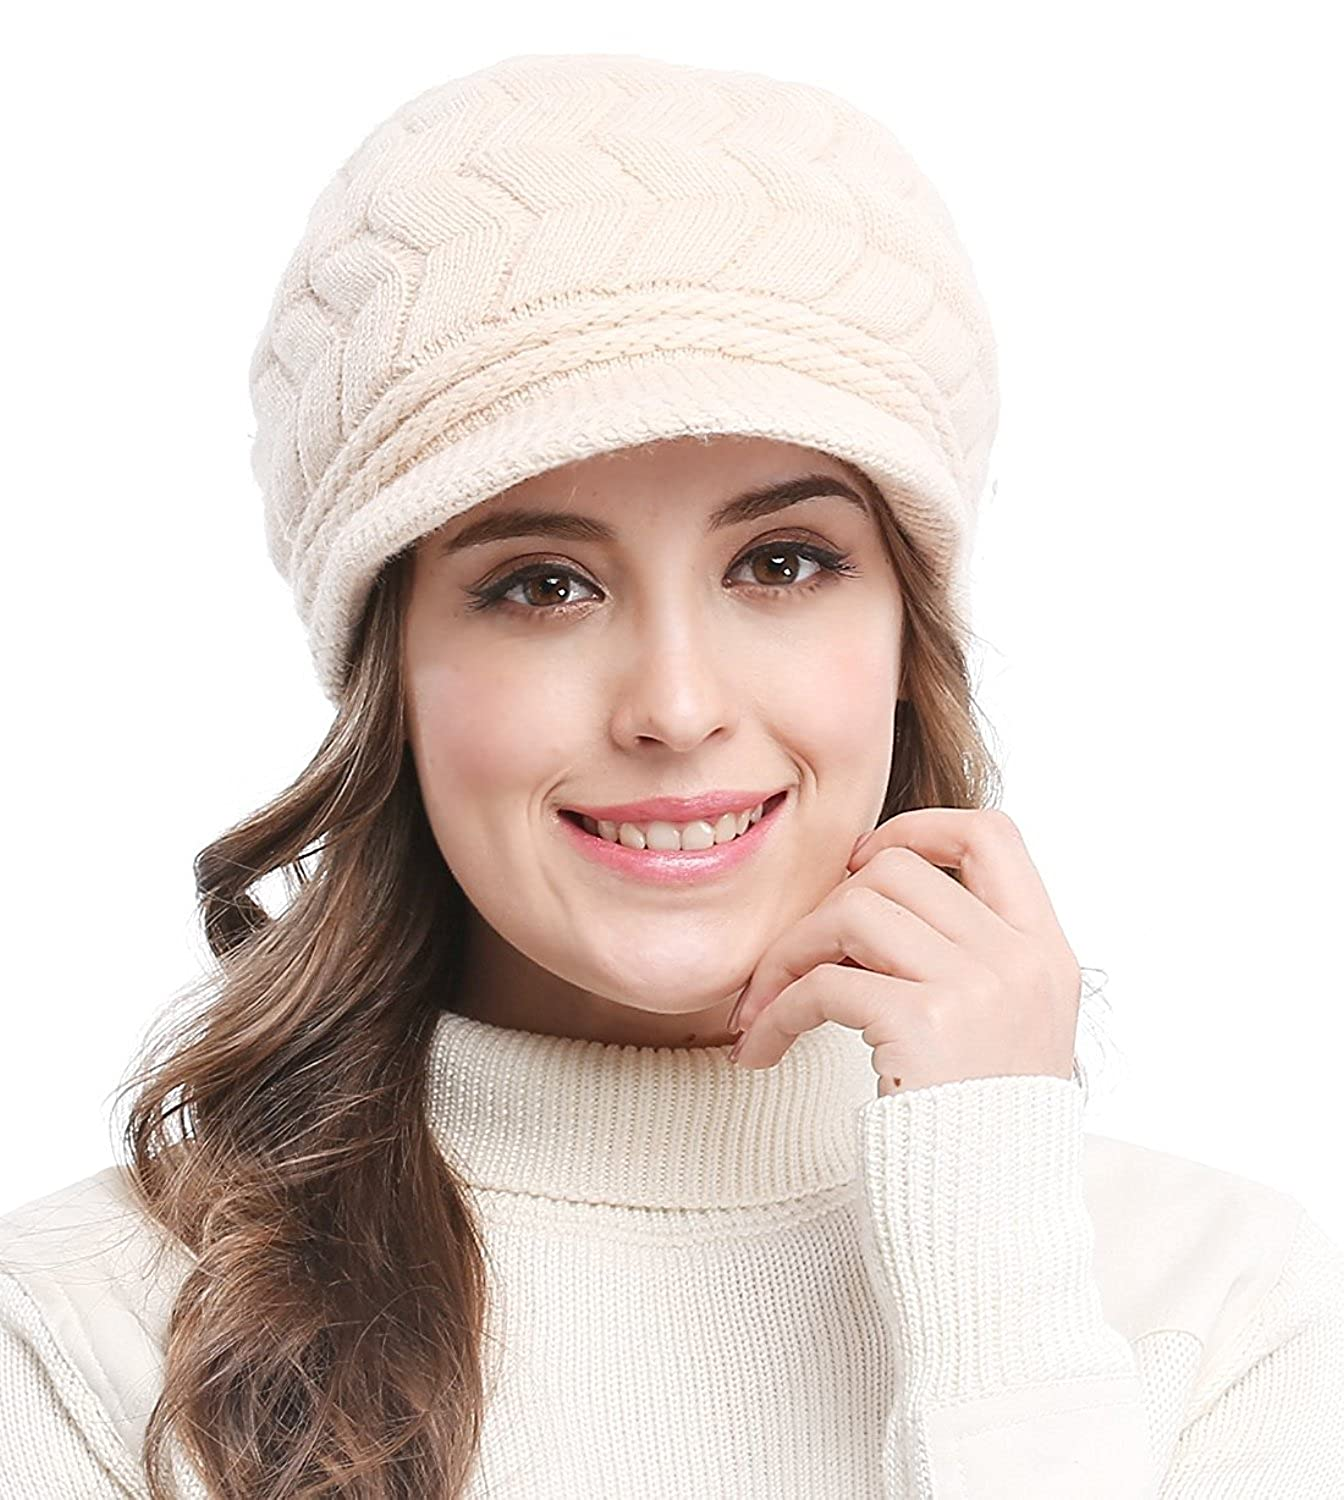 f37b824a5ff Bellady Women s Lady s Winter Knit Thick Warm Hats Beanie Hat Ski Caps with  Visor  Amazon.in  Clothing   Accessories